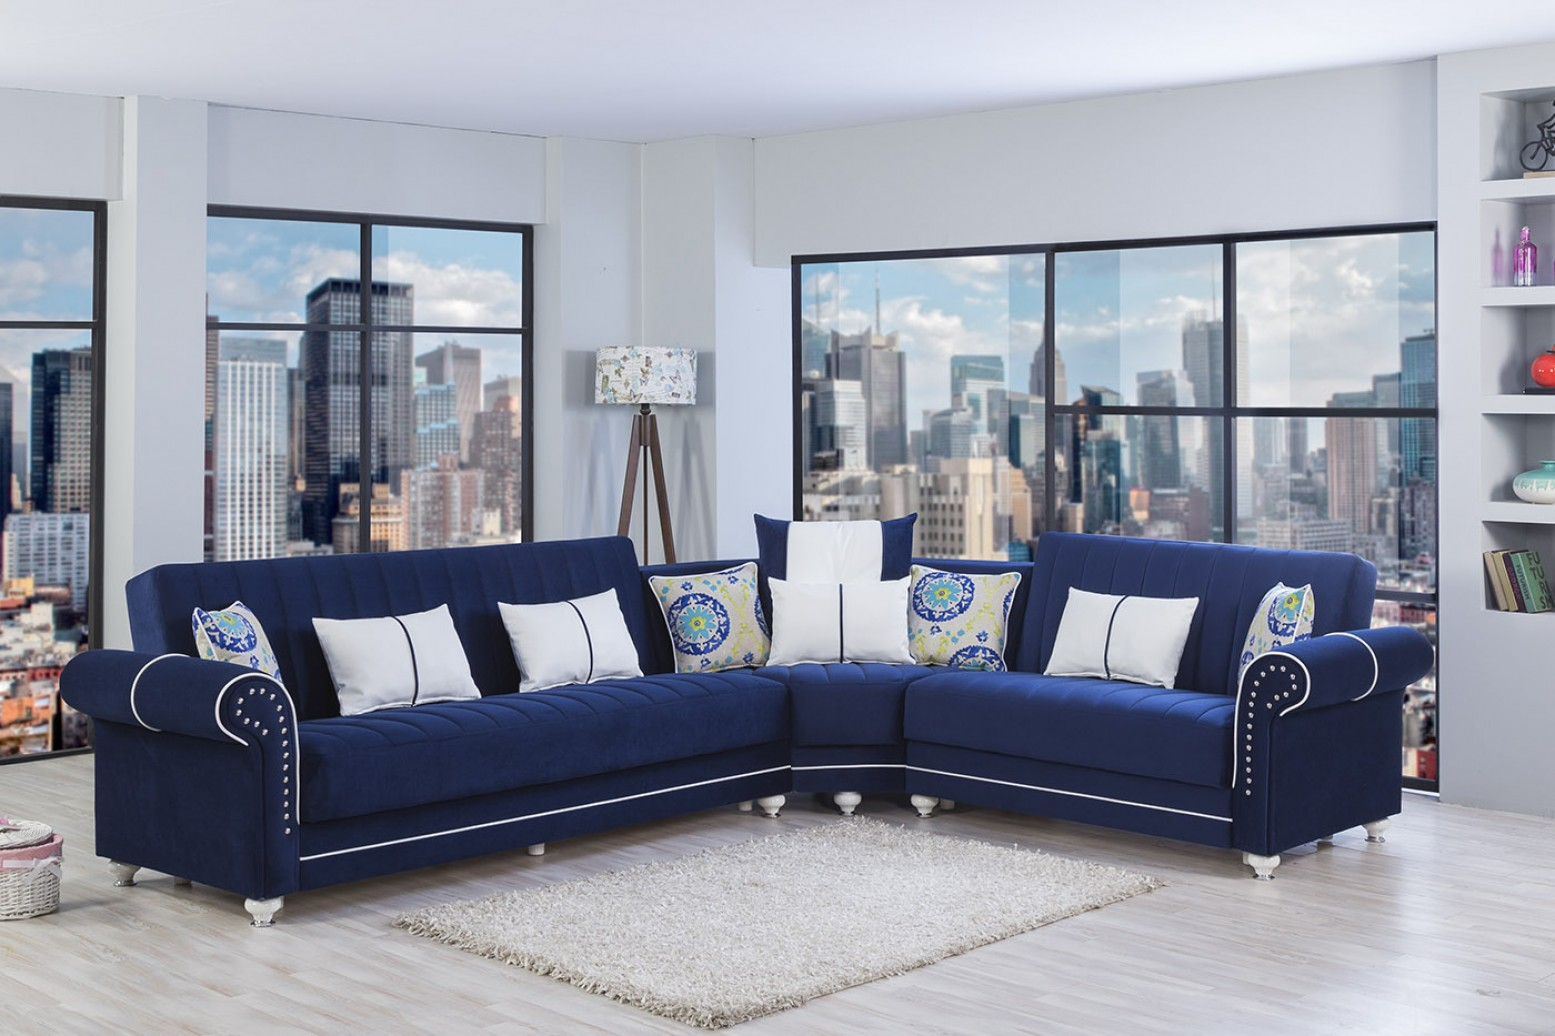 Picture of: Royal Home Sectional Sofa Riva Dark Blue Buy Online At Best Price